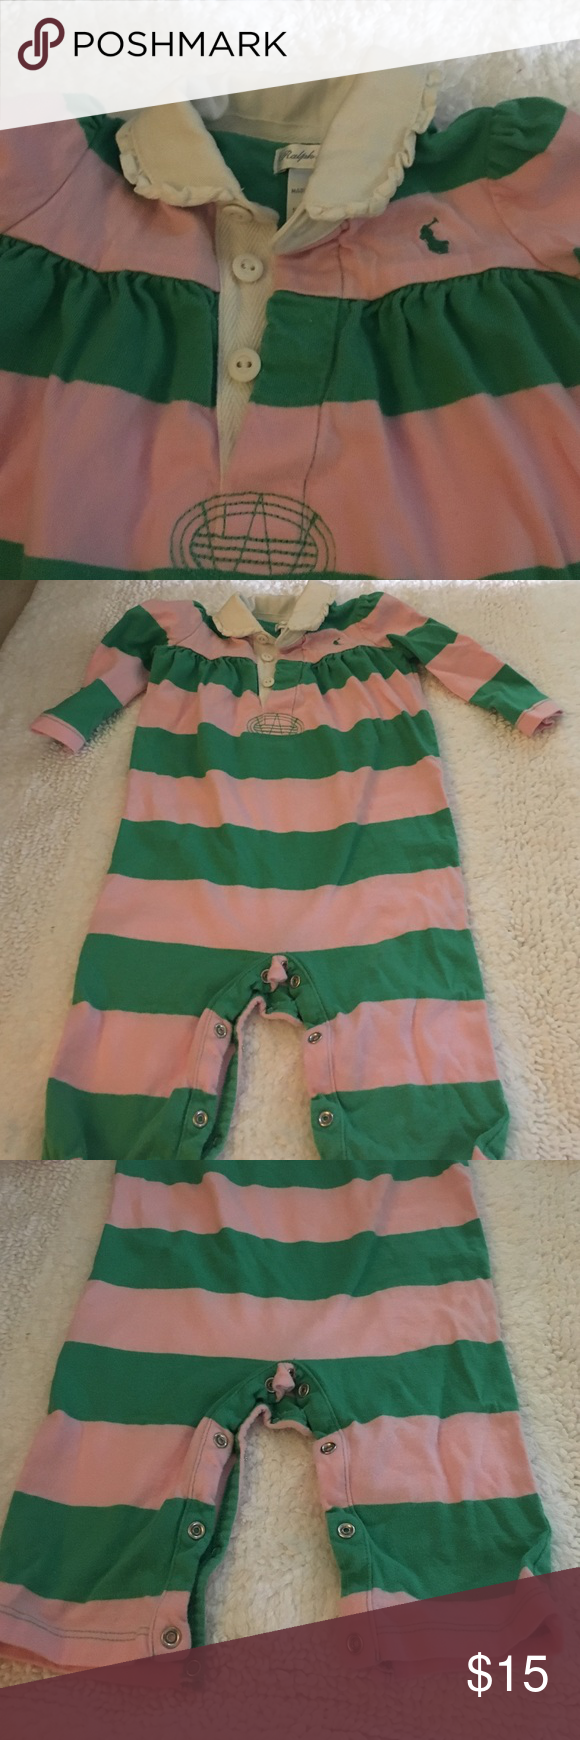 🎉New Listing🎉 Ralph Lauren Romper Beautiful baby girl light pink and green romper.  Has a collar, 3 buttons, long sleeves and bottom snaps for a quick change.  9 months. EUC. 💞check out my other listings and save on bundles. 💞 Ralph Lauren One Pieces Bodysuits